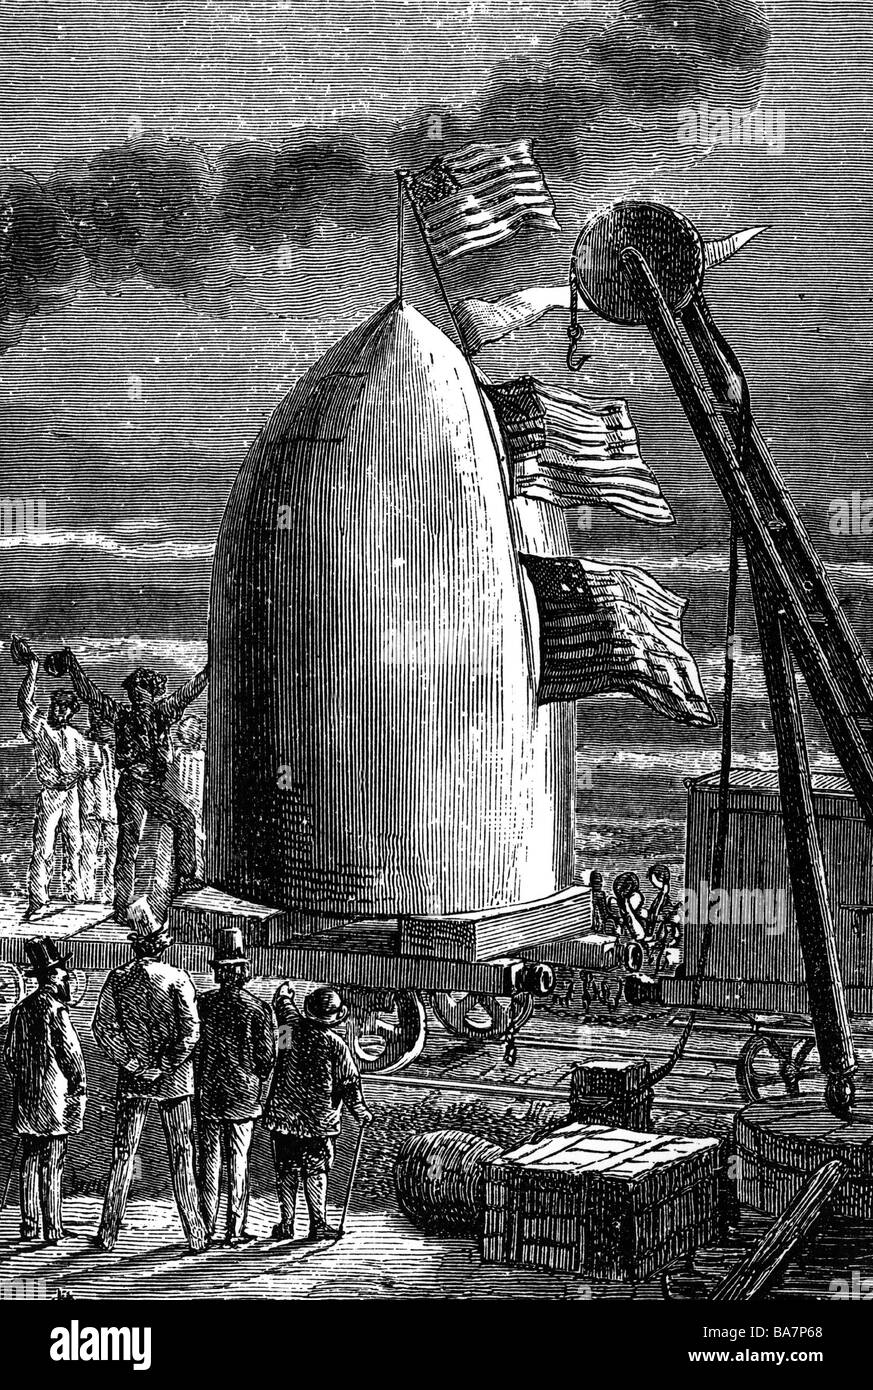 Verne, Jules, 8.2.1828 - 24.3.1905, French author / writer, illustration from 'From the Earth to the Moon' - Stock Image